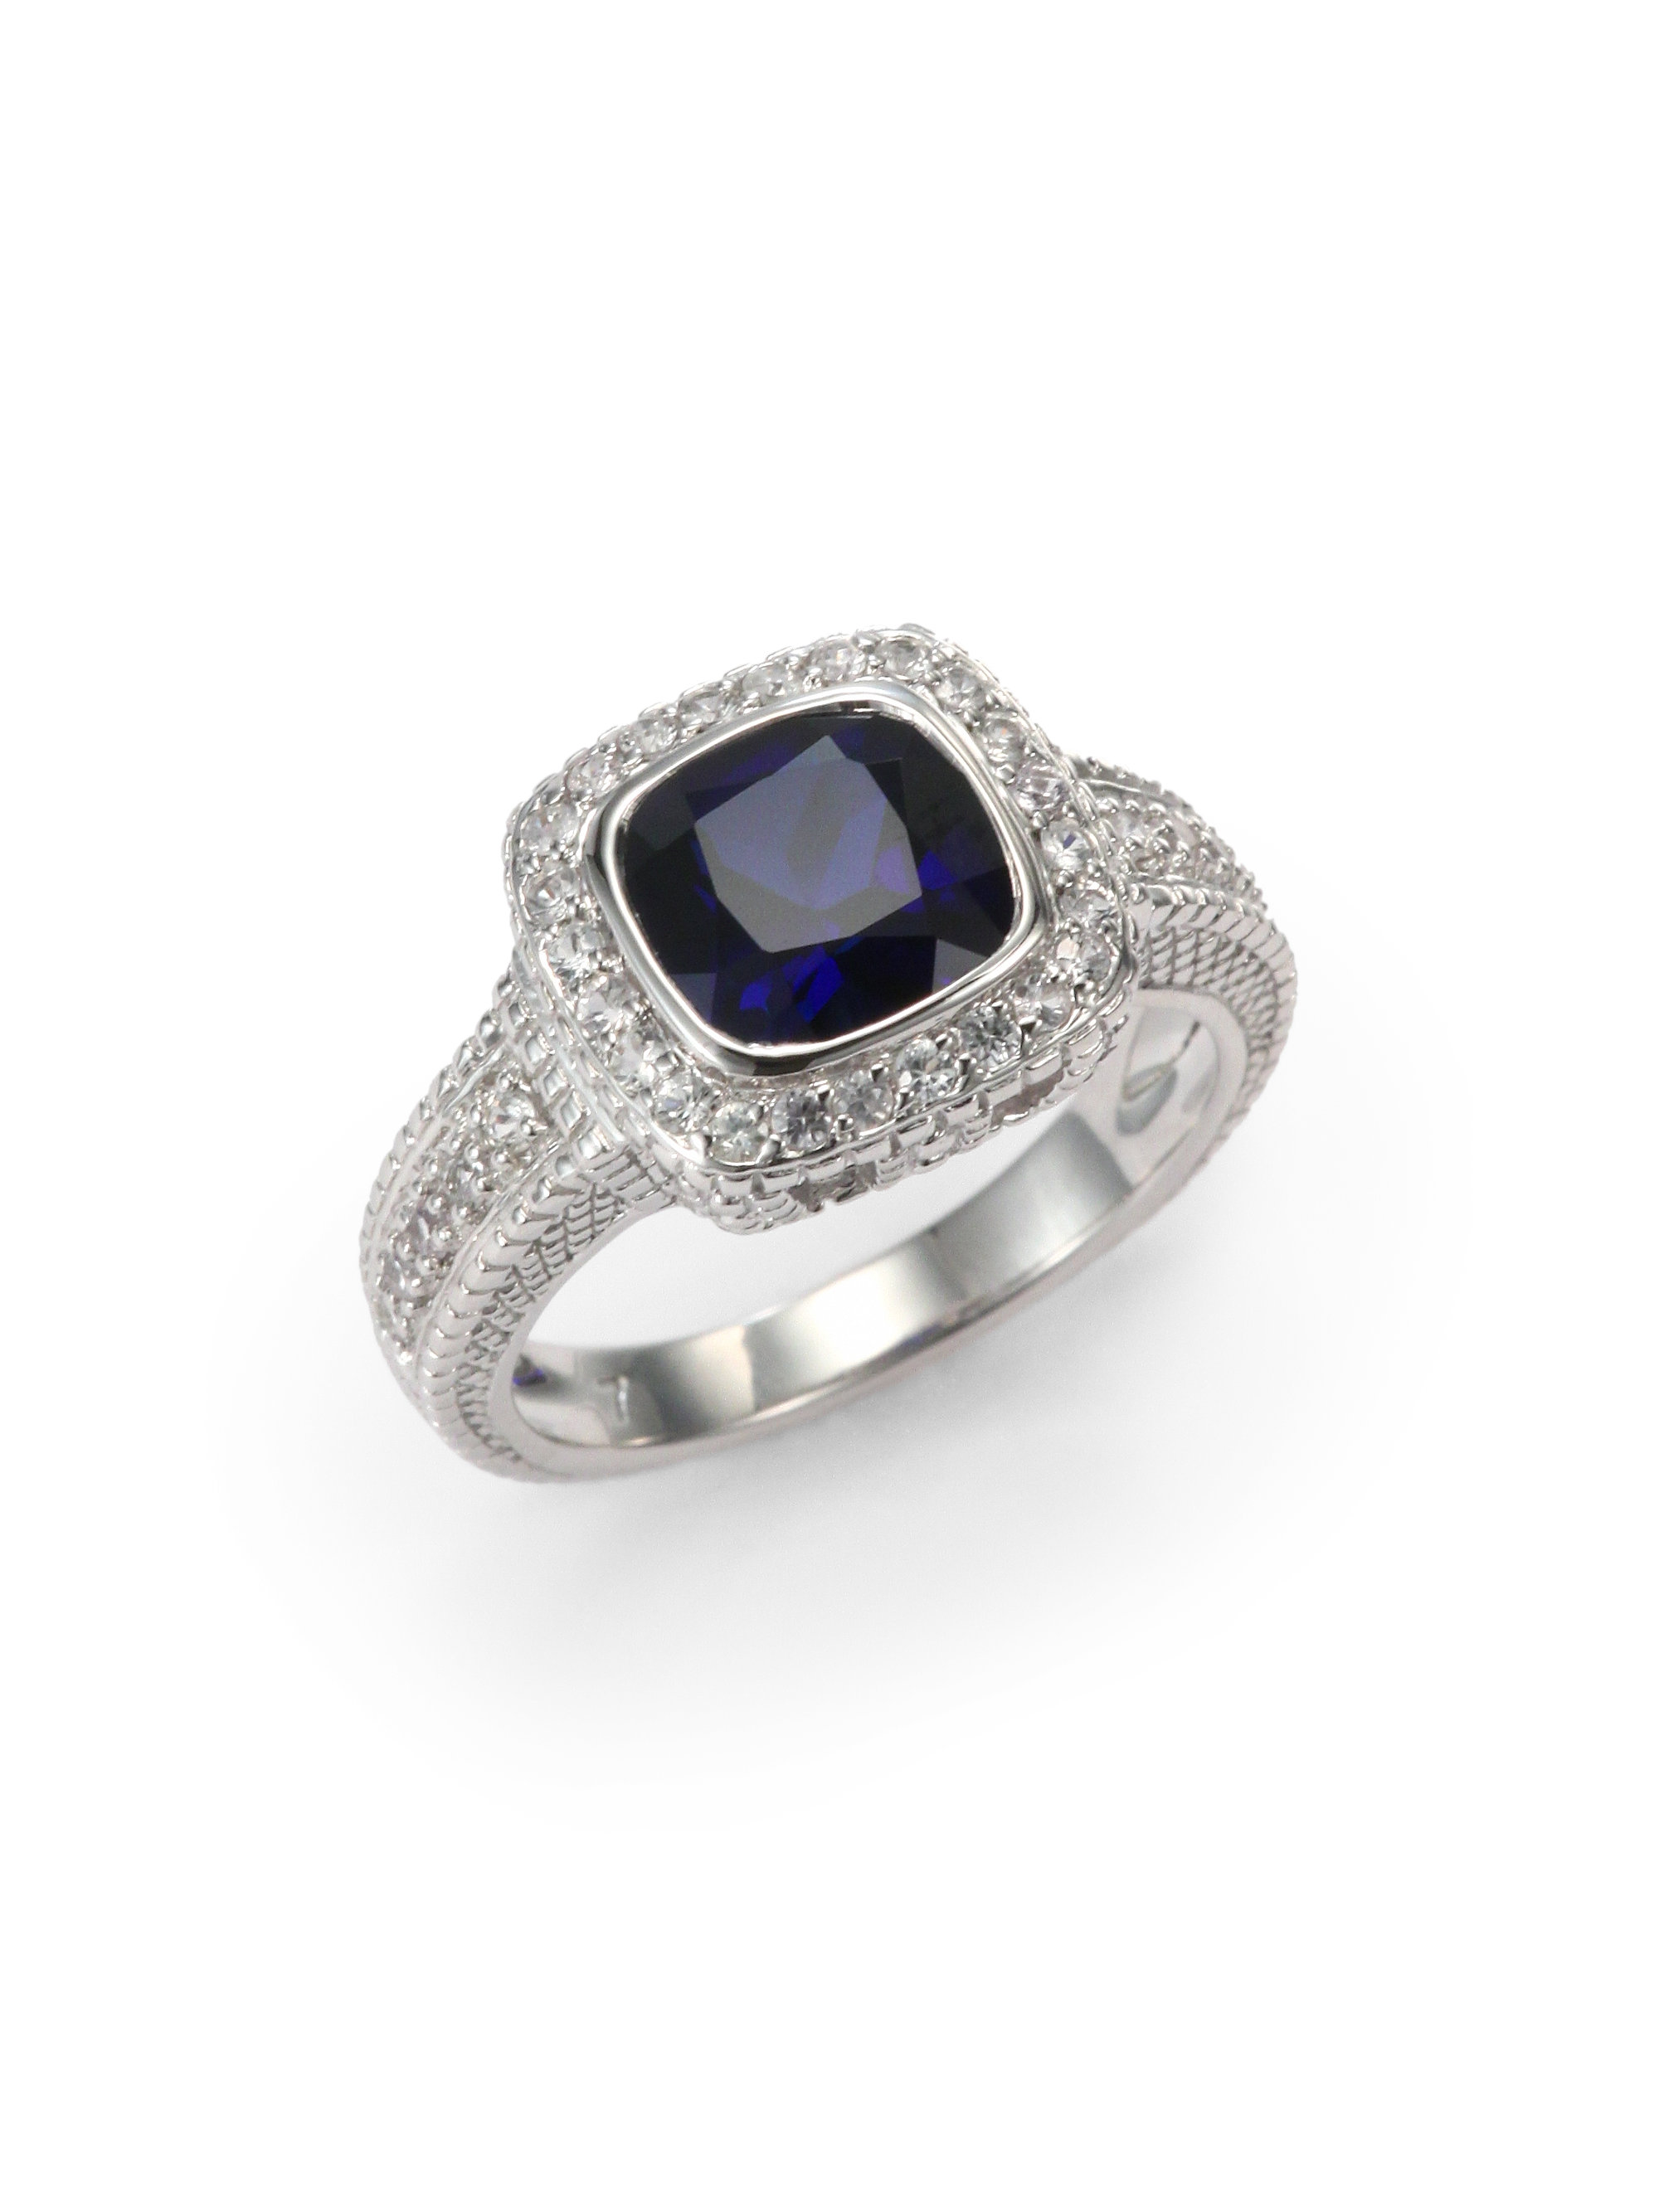 sumuduni ceylon sapphire rings white engagement natural gems ring halo diamond classic corundum